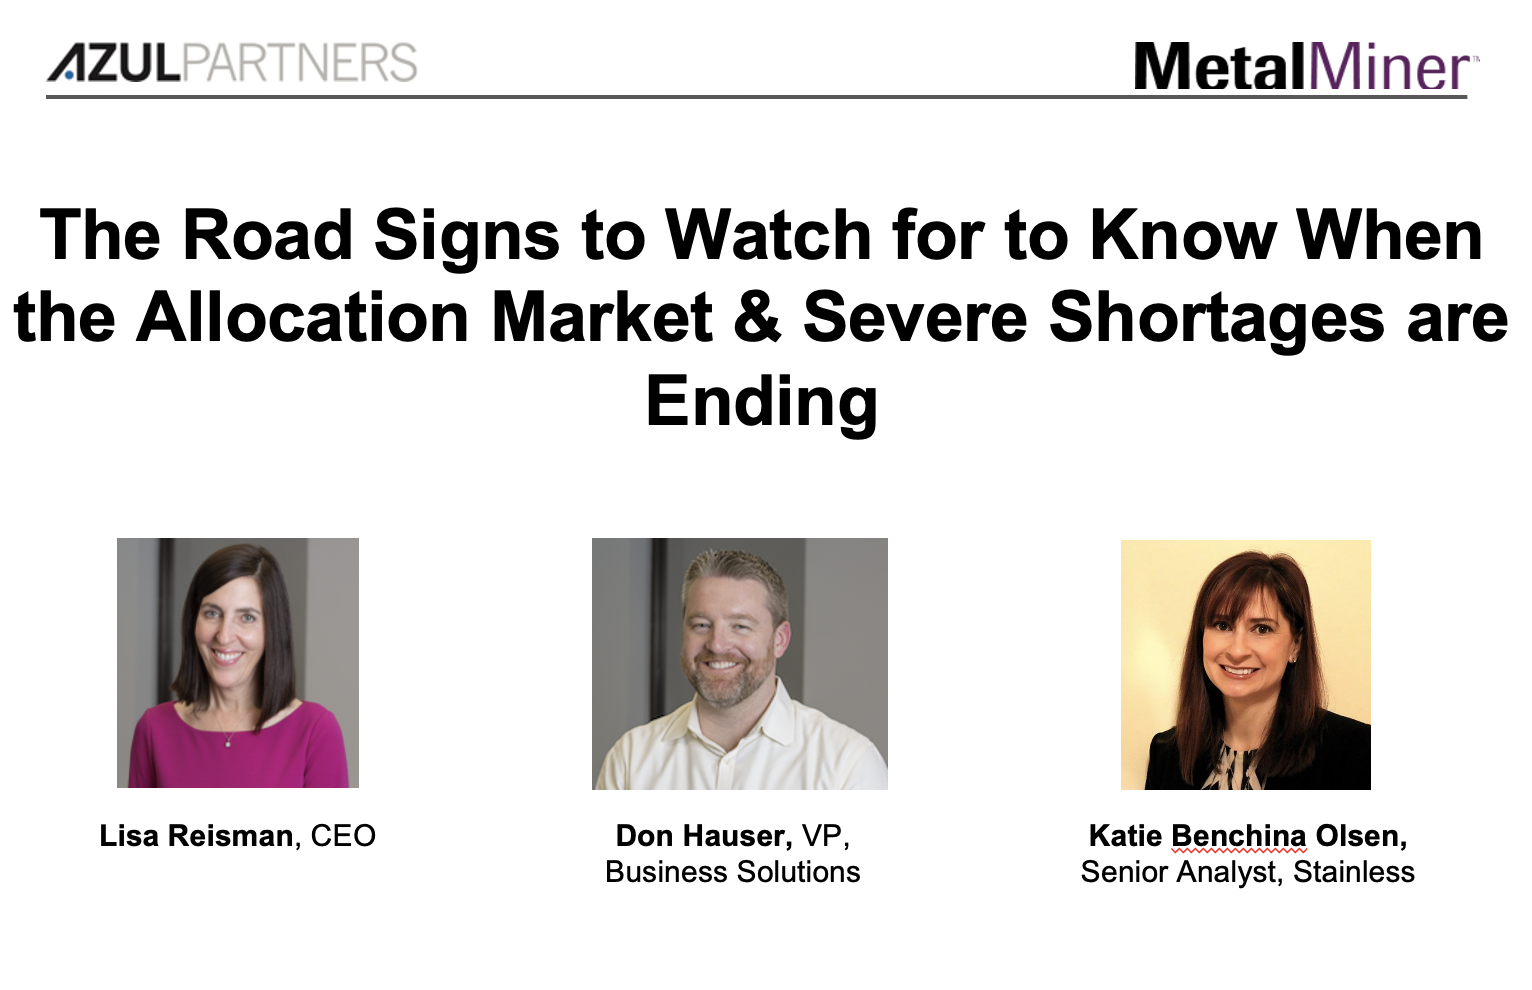 The Road Signs to Watch for to Know When the Allocation Market & Severe Shortages are Ending slide image